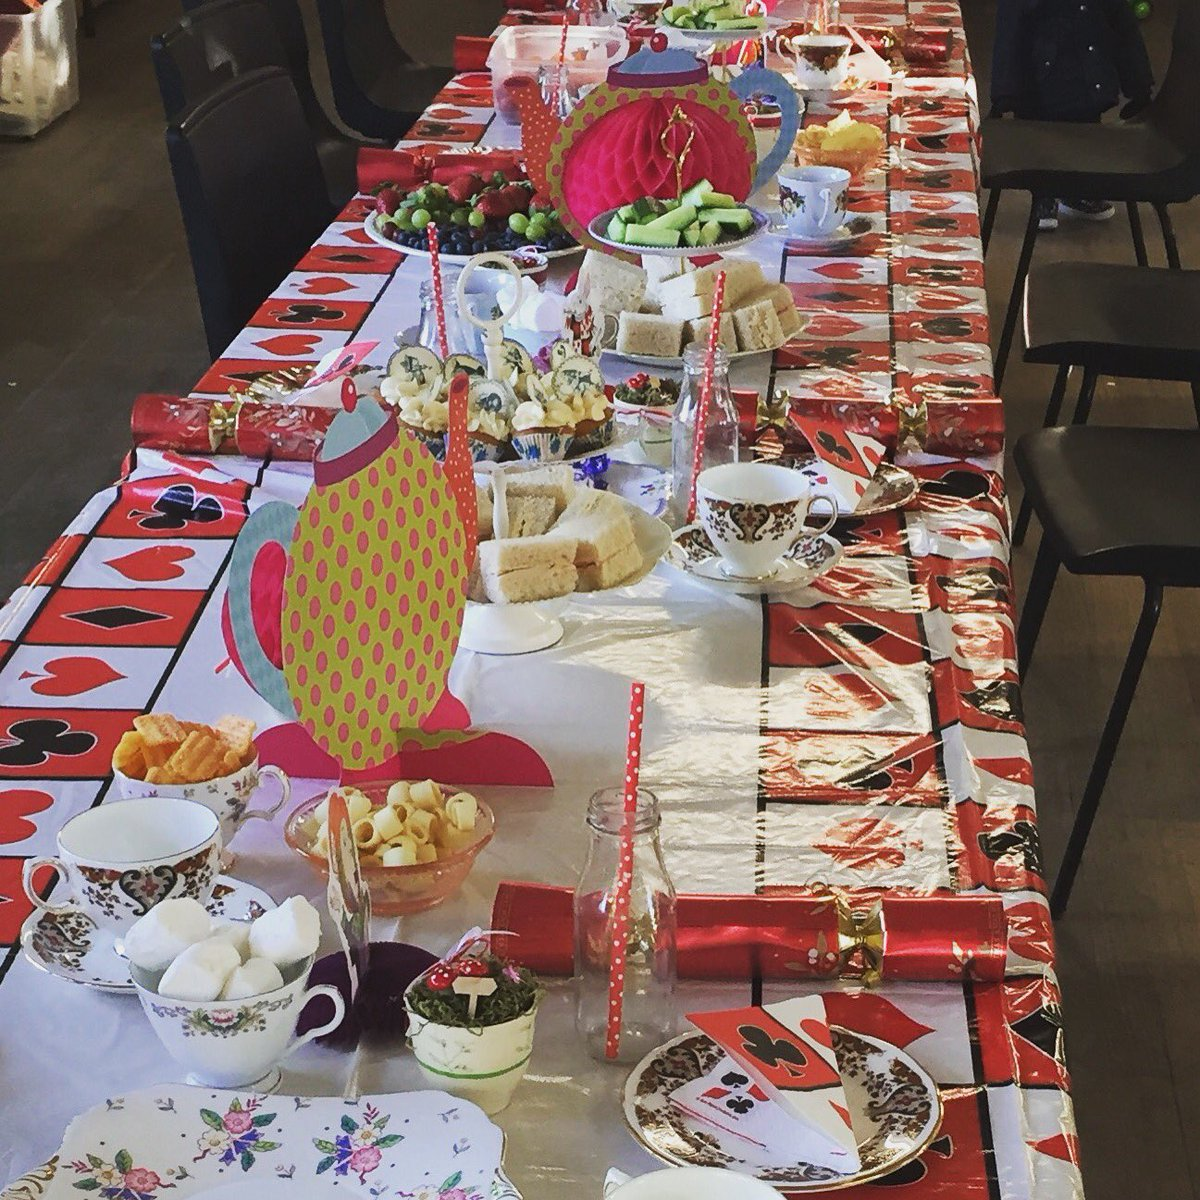 "Debbie Jones on Twitter: ""Setting up for Sat's Mad Hatters Christmas Party in #hernebay We had a huge party with lots of silly games #Madhatter ..."